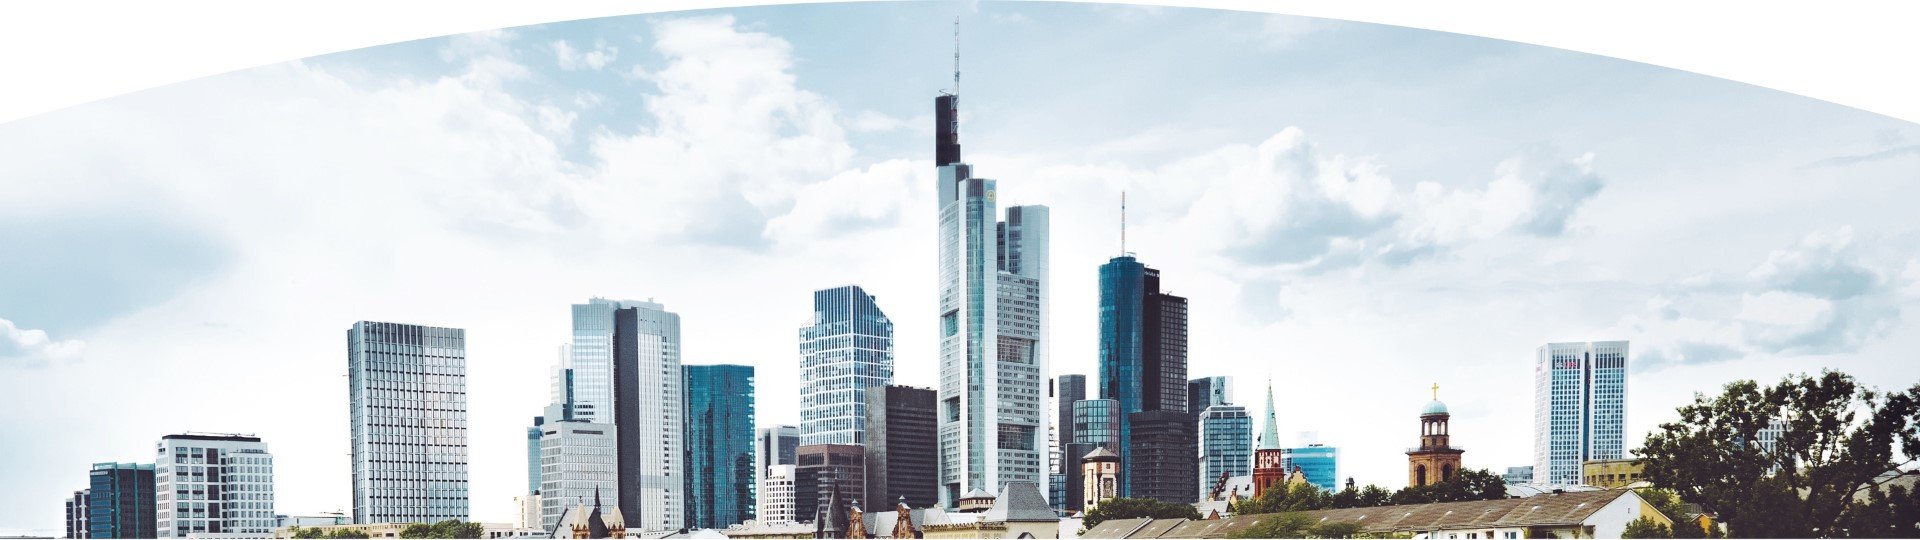 High rise commercial and real estate buildings Frankfurt